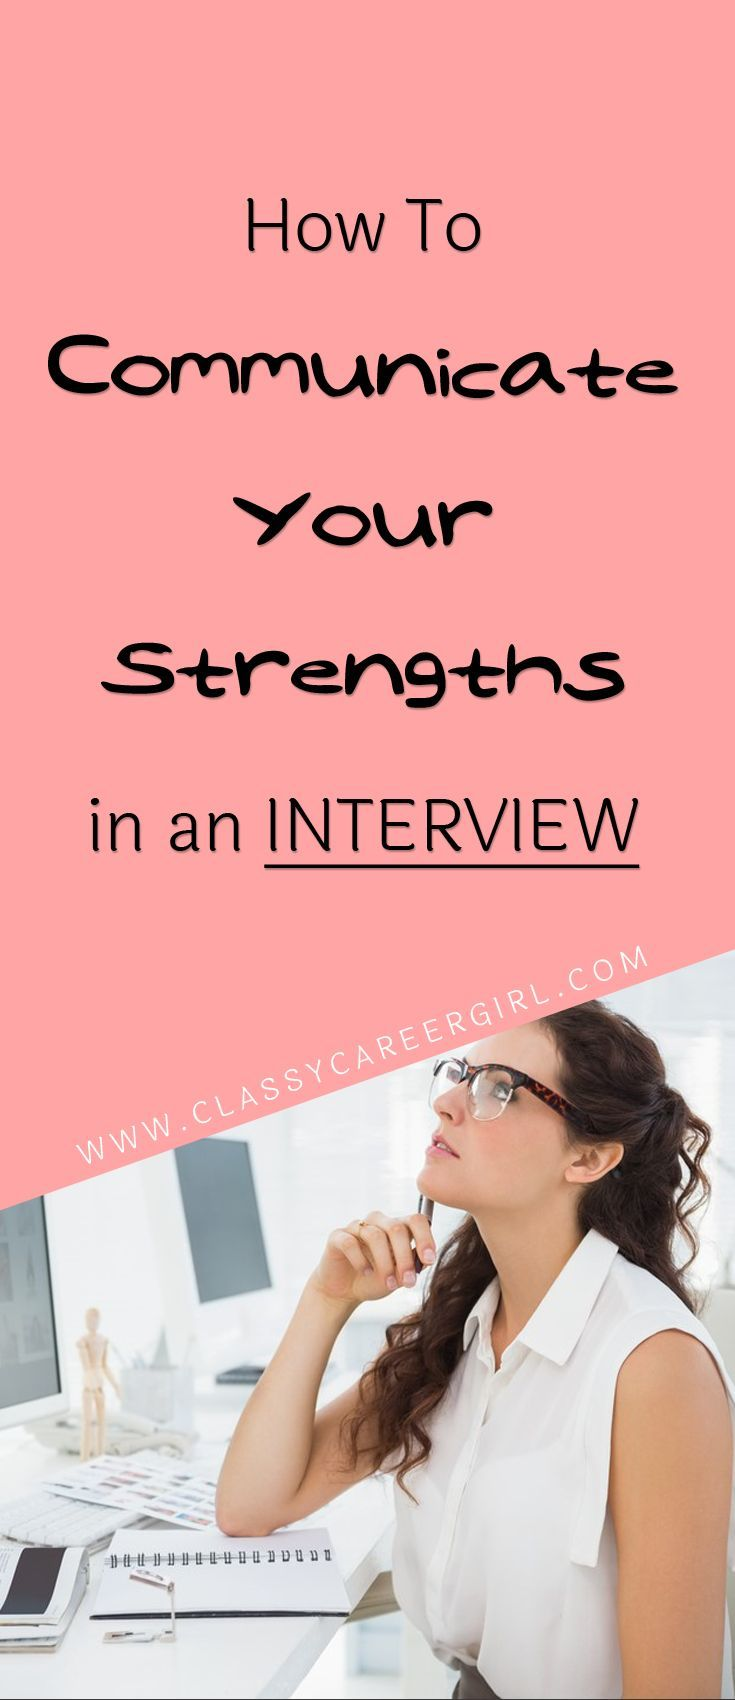 How To Communicate Your Strengths in an Interview  How To Communicate Your Strengths in an Interview  Welcome to CCGTV! This is a daily video show where I answer your questions! Every weekday on YouTube, I'll be answering YOUR questions and I am super excited!!  If you have a question you would like me to answer on a future episode of CCGTV, leave a comment below or email me